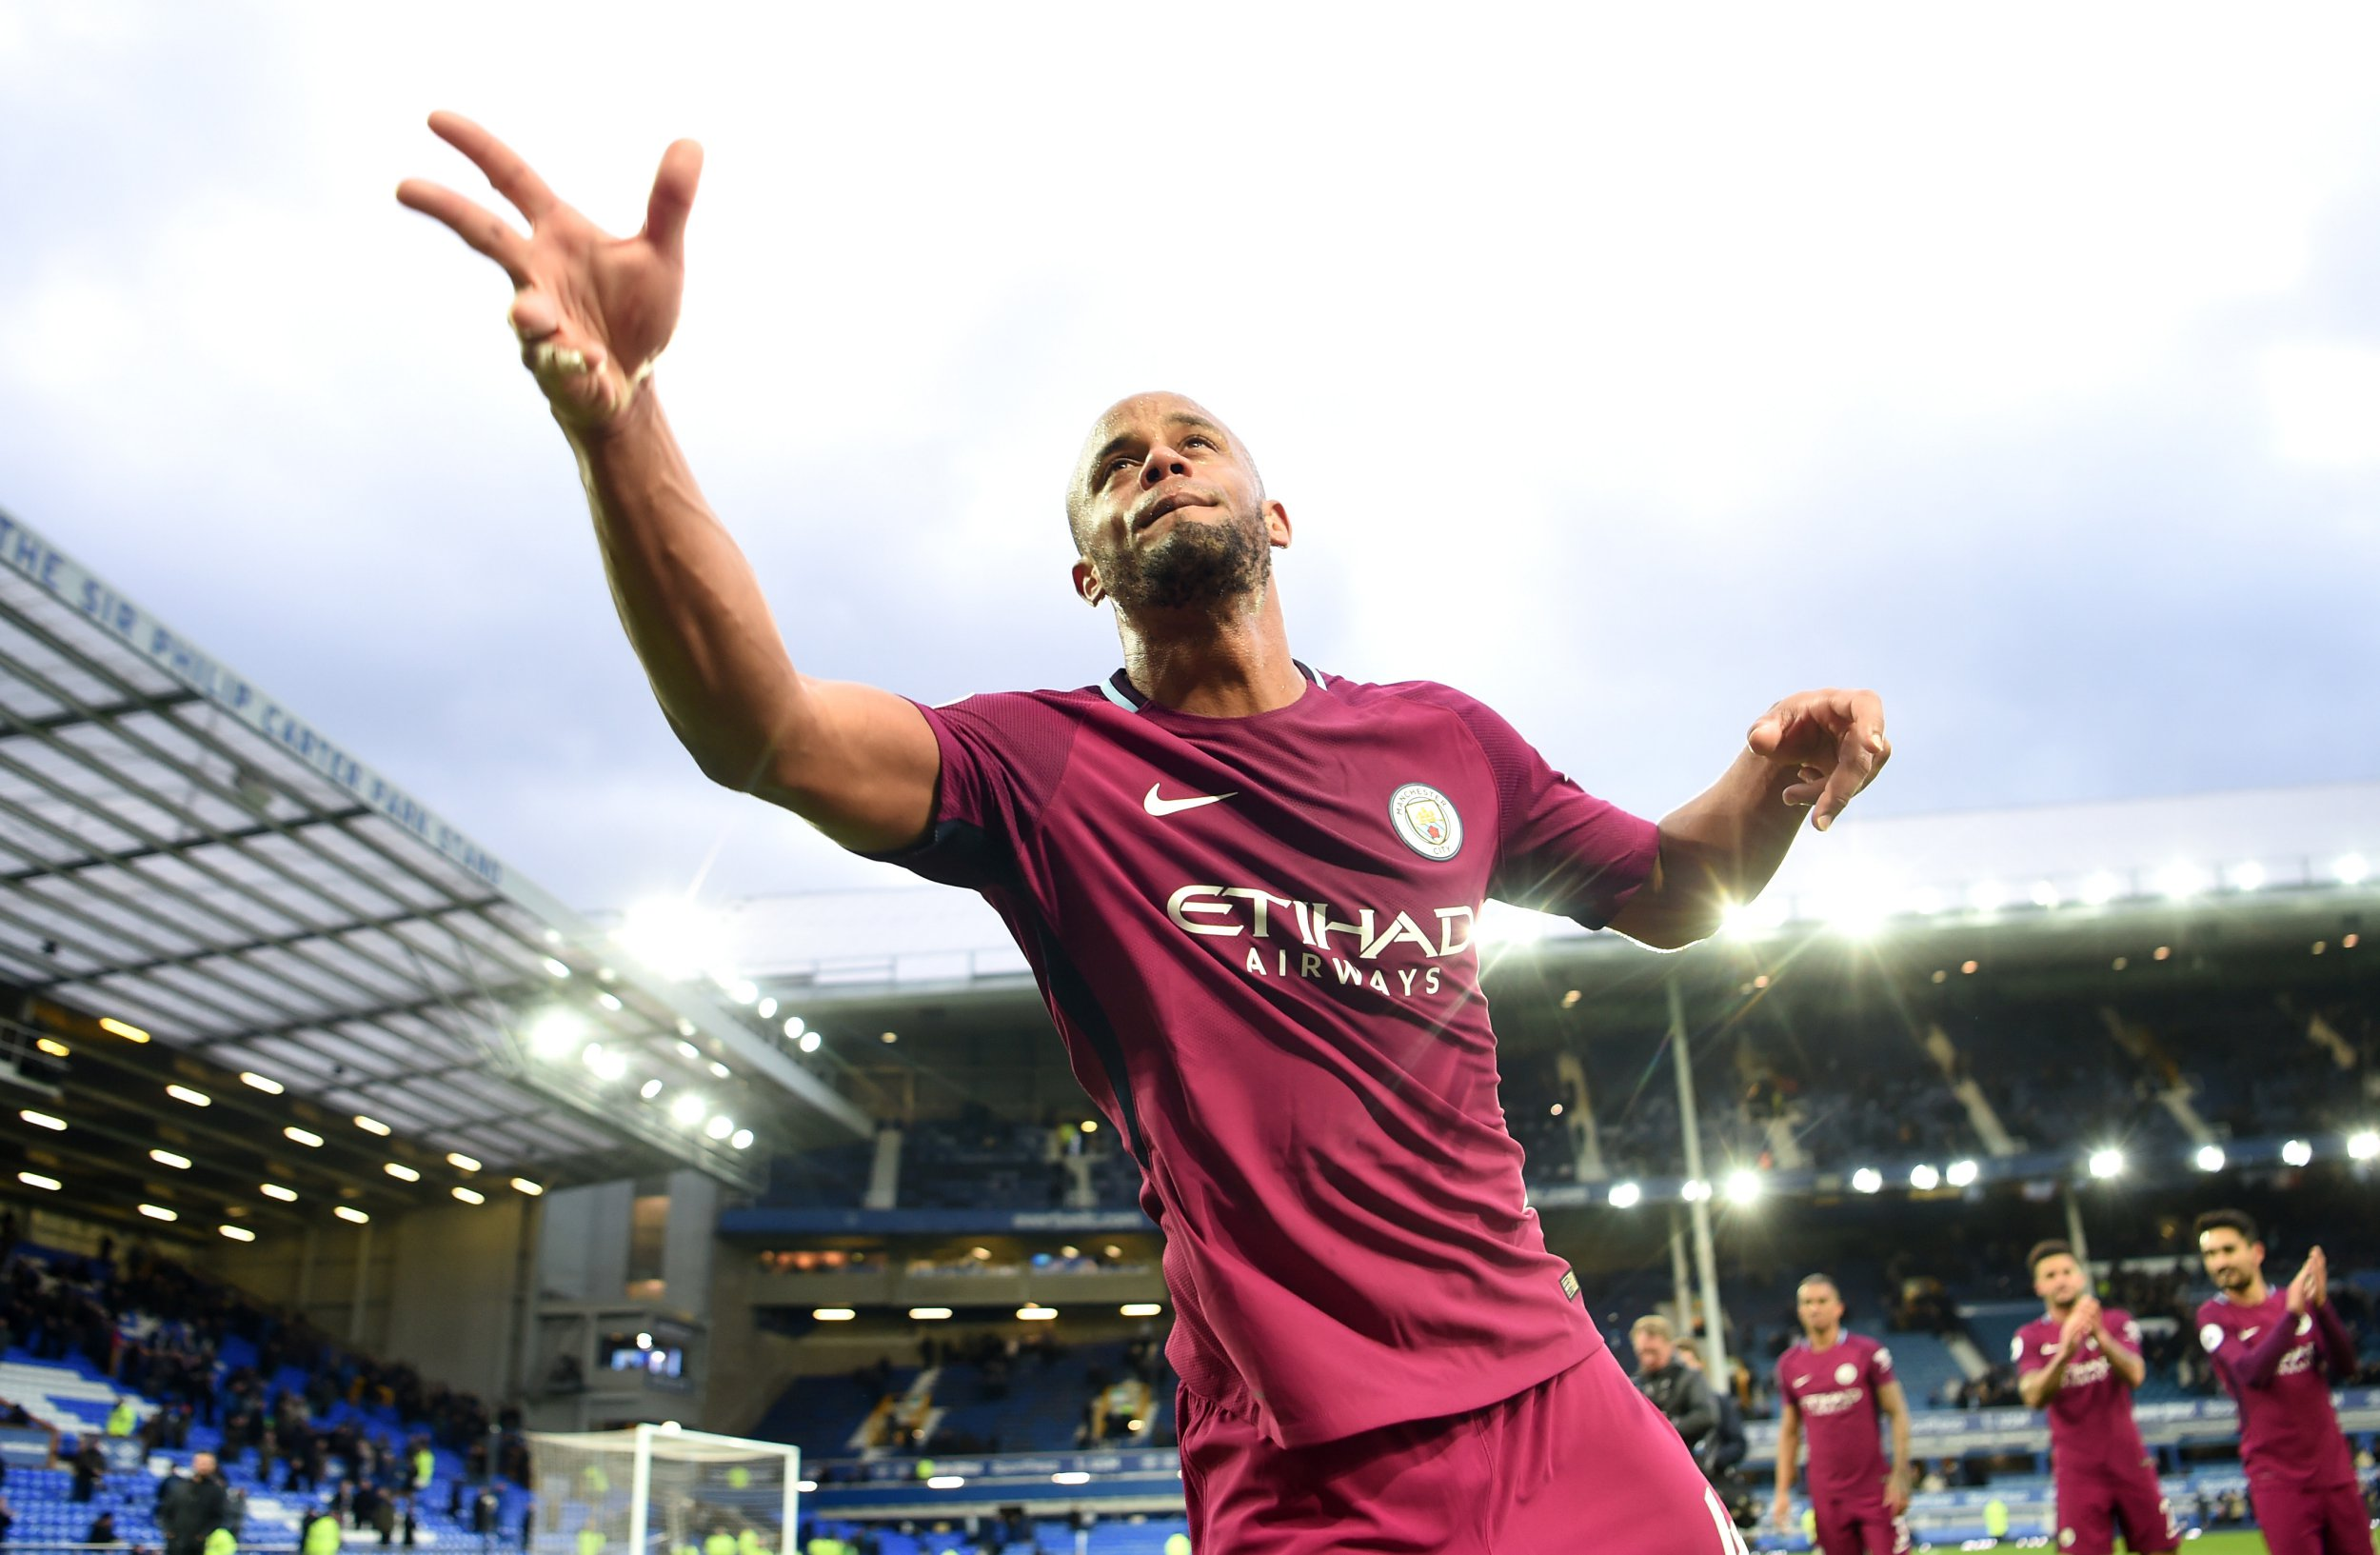 Vincent Kompany reveals what it's like to play against Zlatan Ibrahimovic, Lionel Messi and Luis Suarez